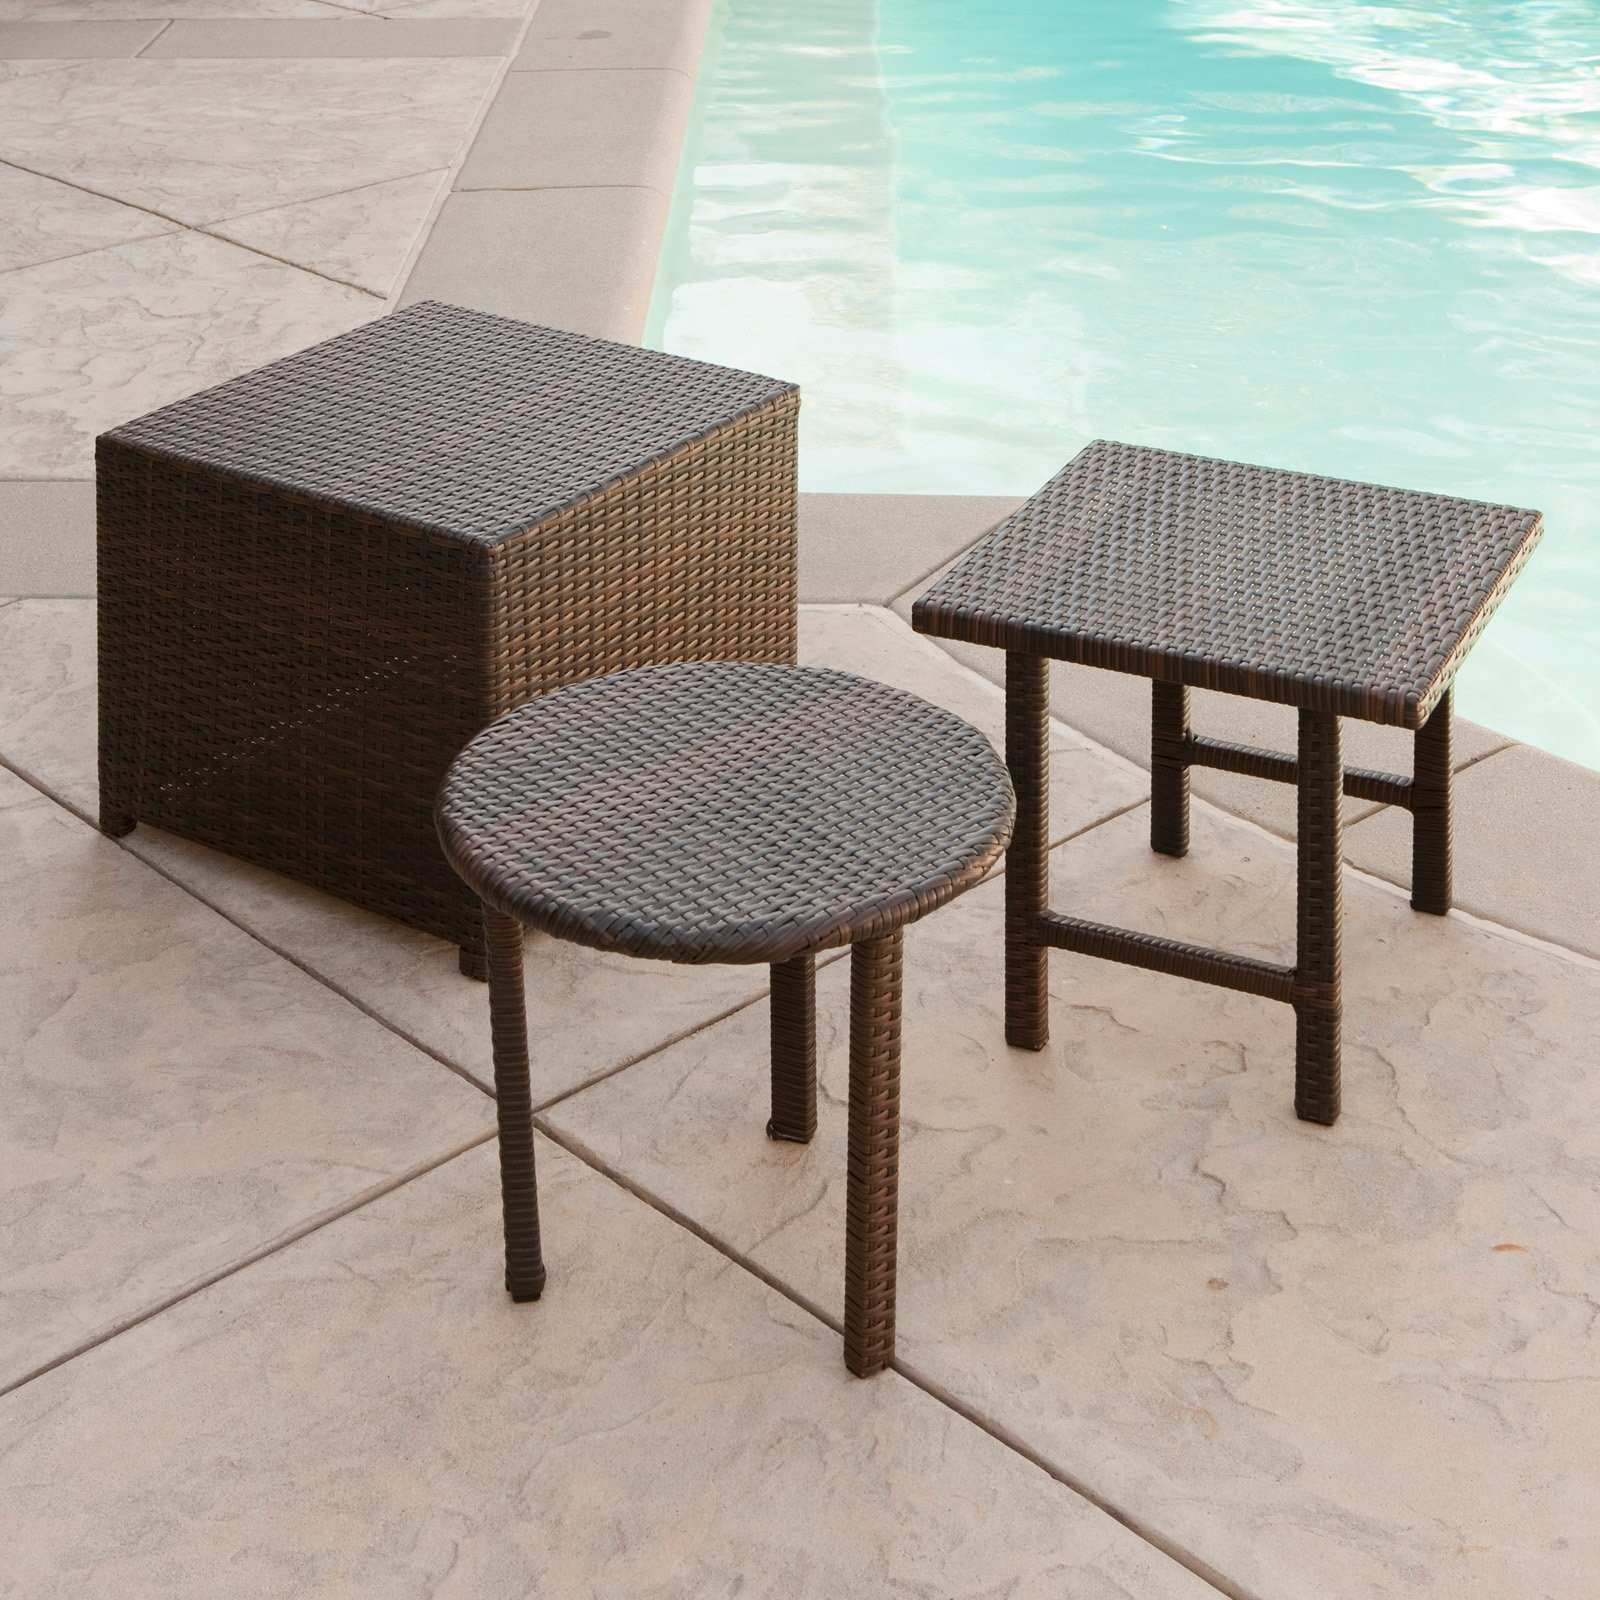 unique outdoor wicker end tables for round side table patio attractive palmilla set accent small metal ikea cube storage living room cabinets furniture legs pottery barn drum